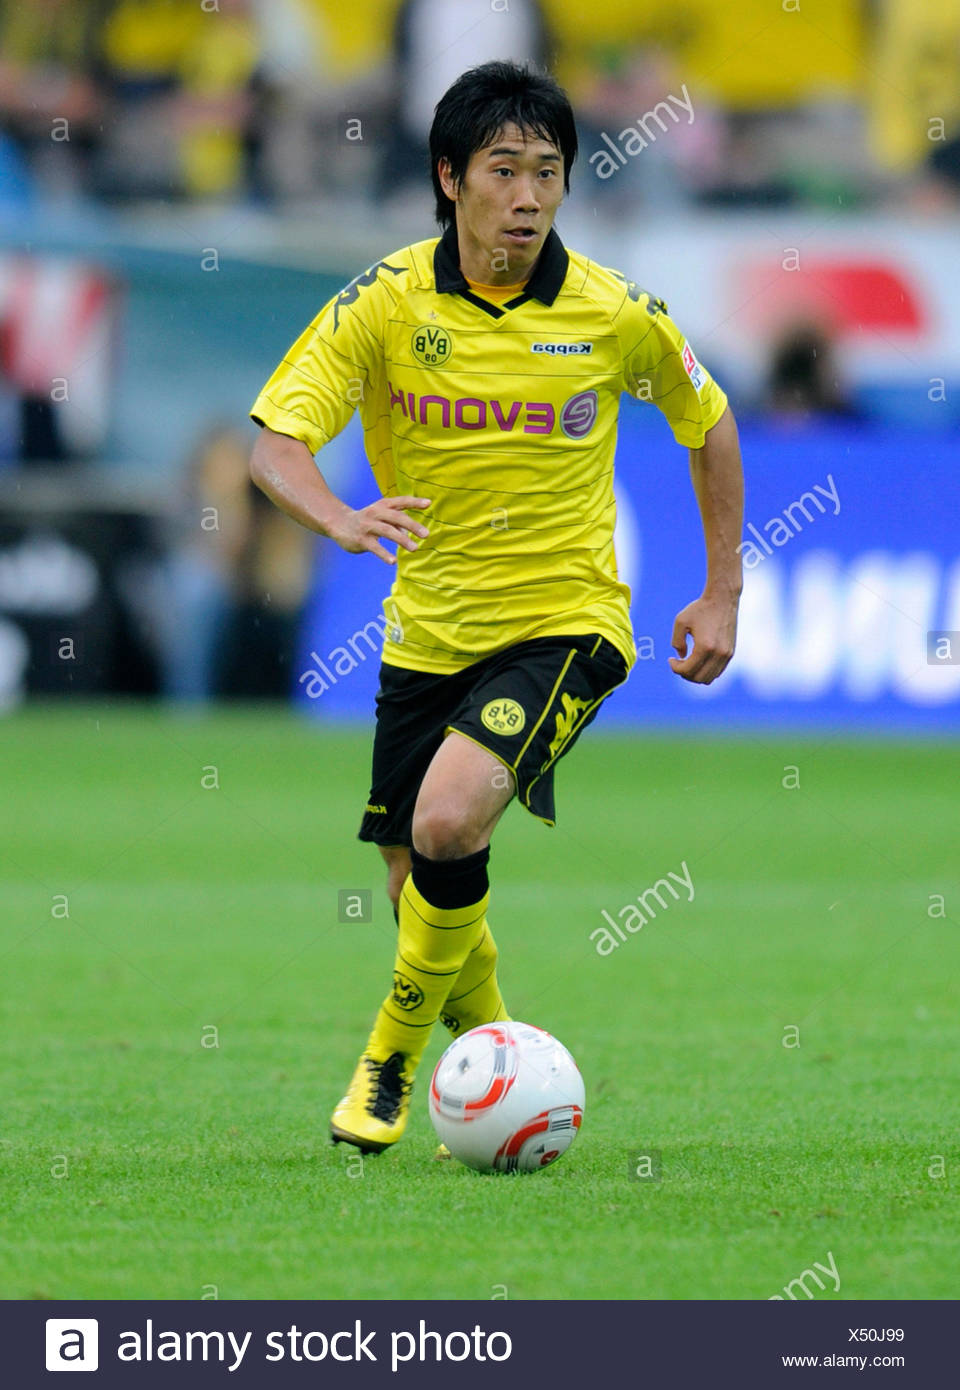 Fussball-Bundesliga, professional association football league in Germany, Season 2010-2011, 1st match of the round, Borussia Stock Photo